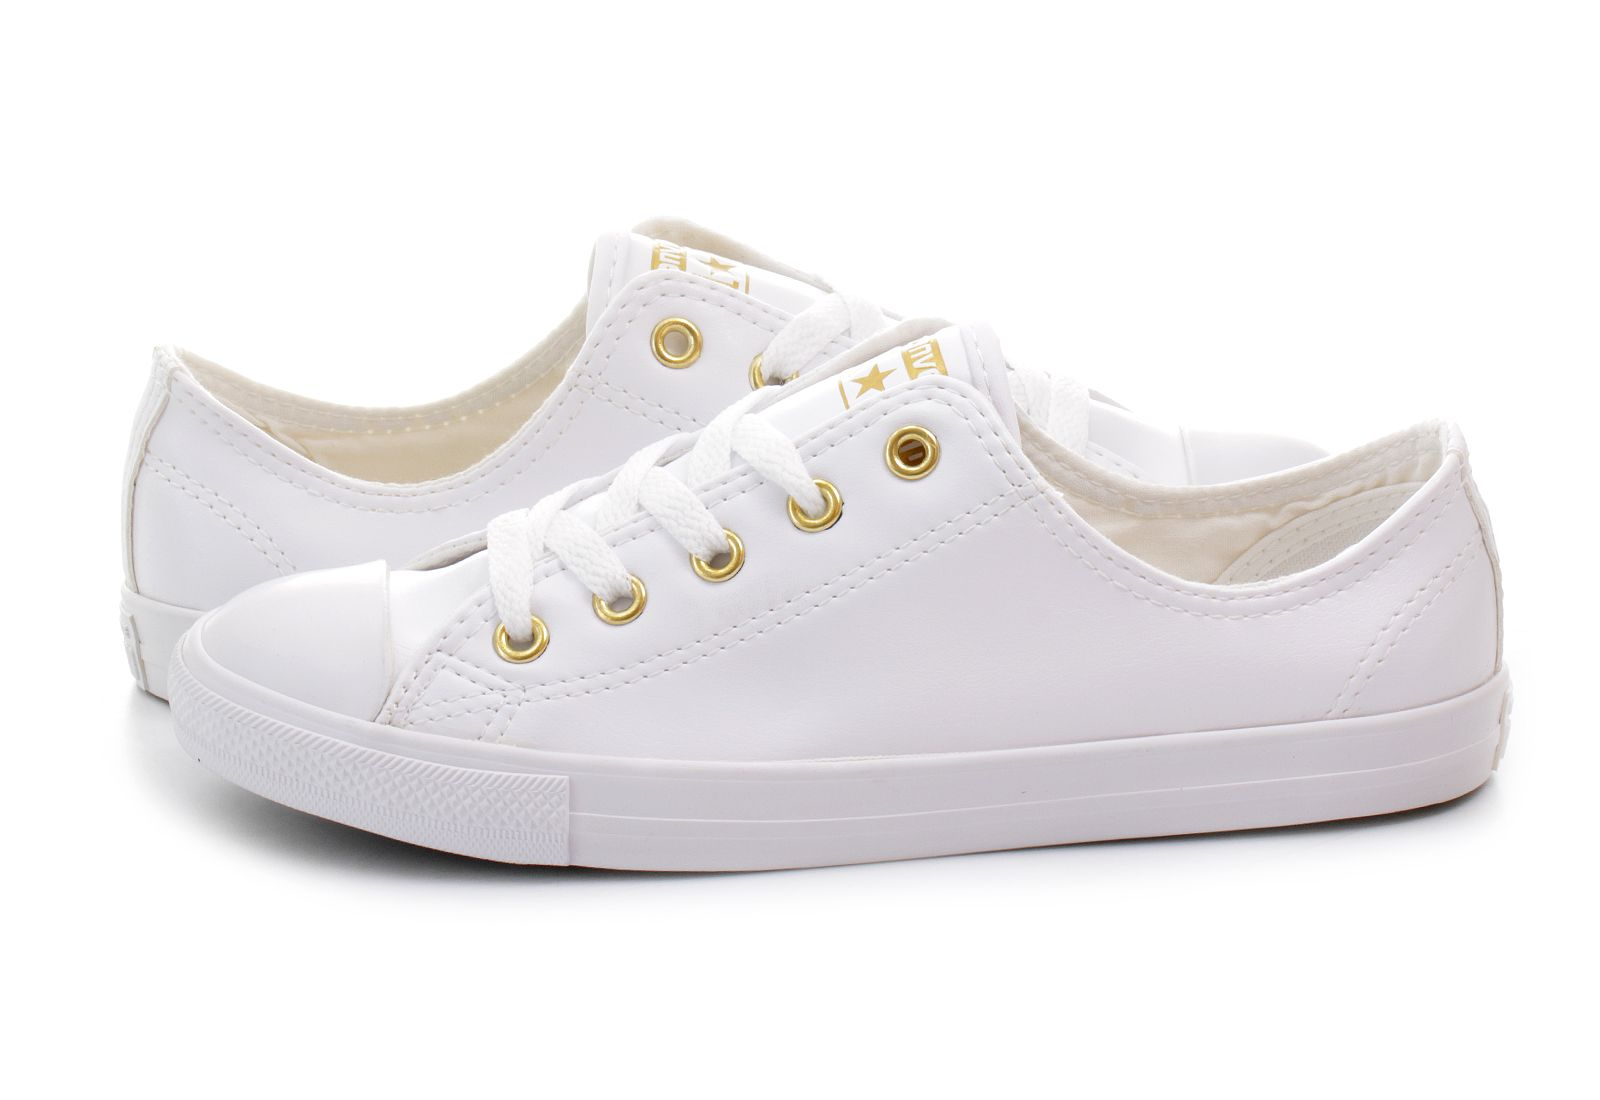 Converse Tornacipő - Chuck Taylor All Star Dainty Leather - 555837C ... c13490b911